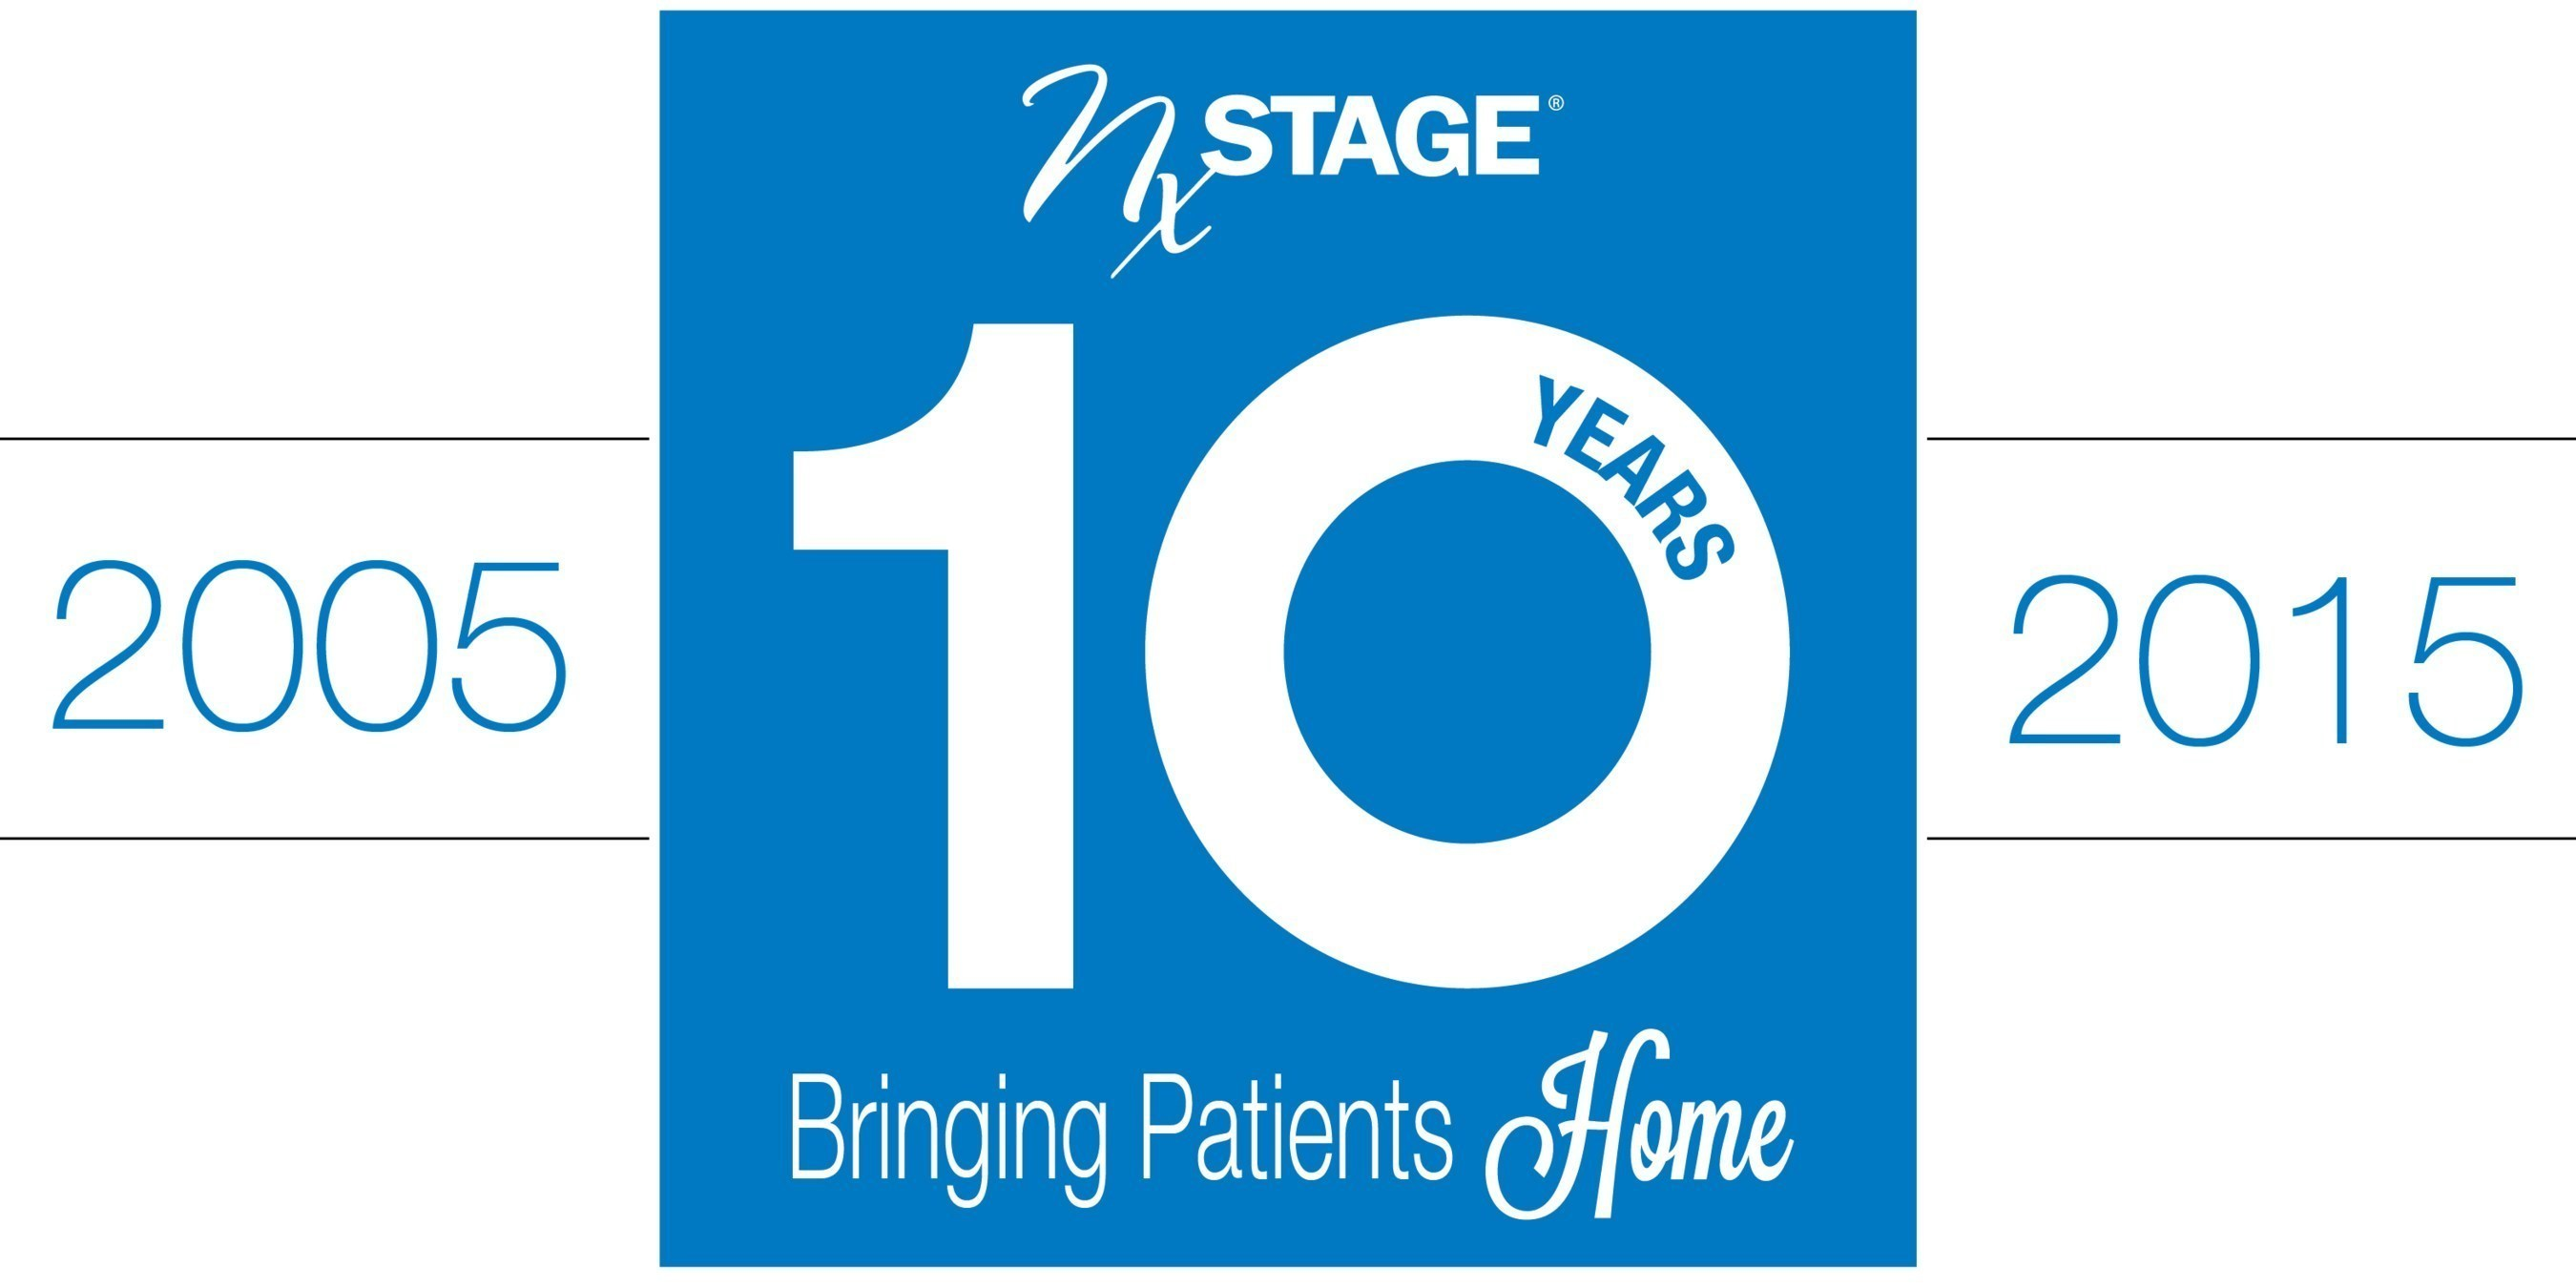 NxStage Celebrates 10th Anniversary